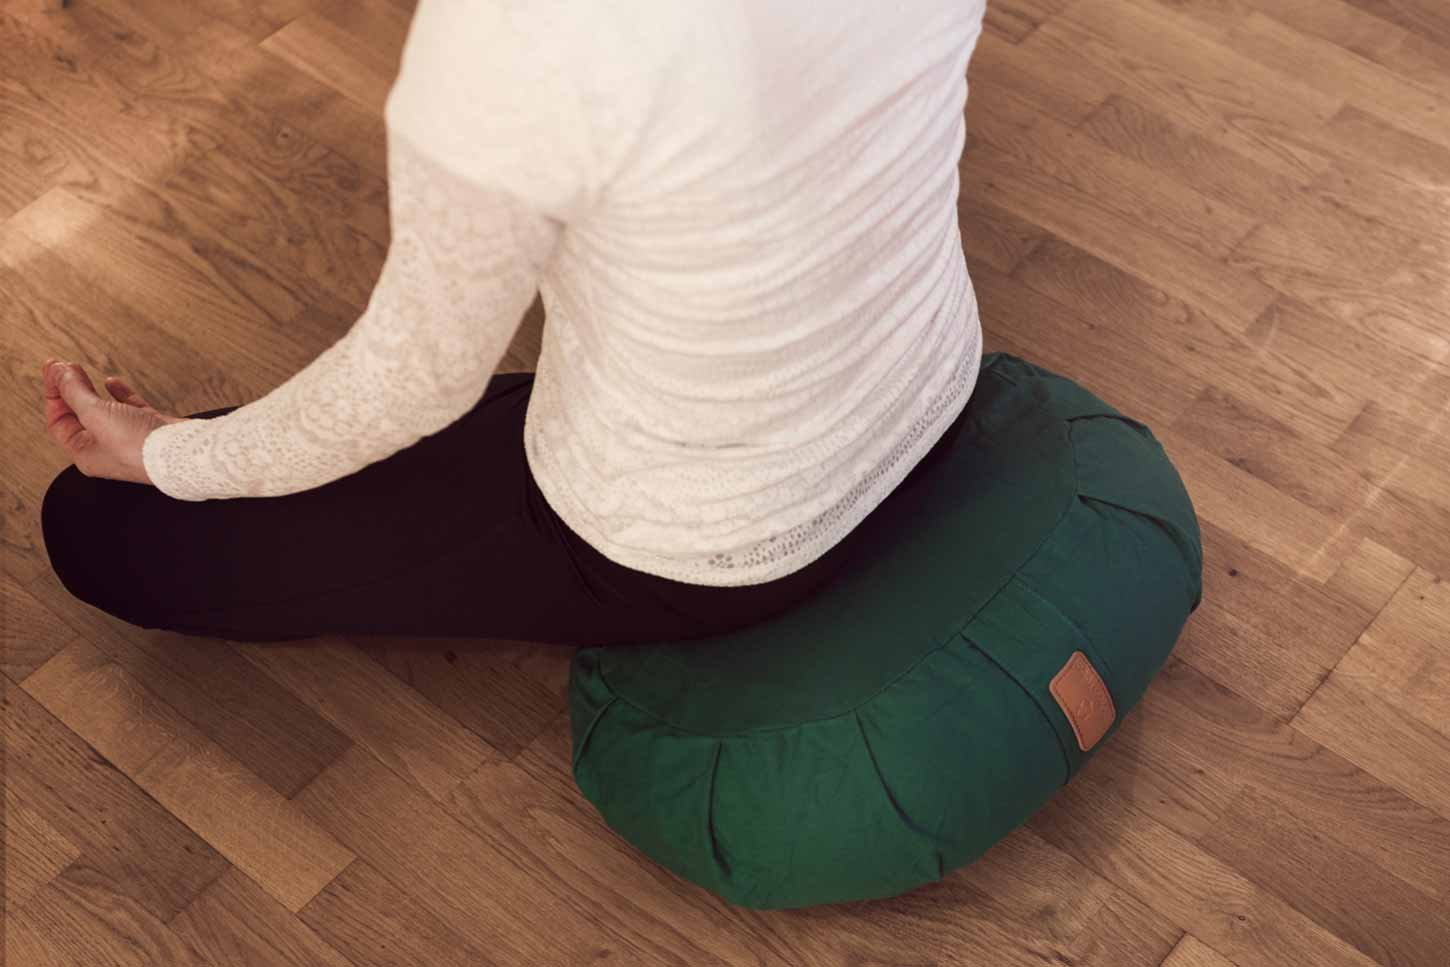 #DoYourYoga Cushion/Pillow for Yoga or Meditation - Filled with Natural Buckwheat/Cover 100% Cotton & Size 5.9'' x11.8'' Apple Green